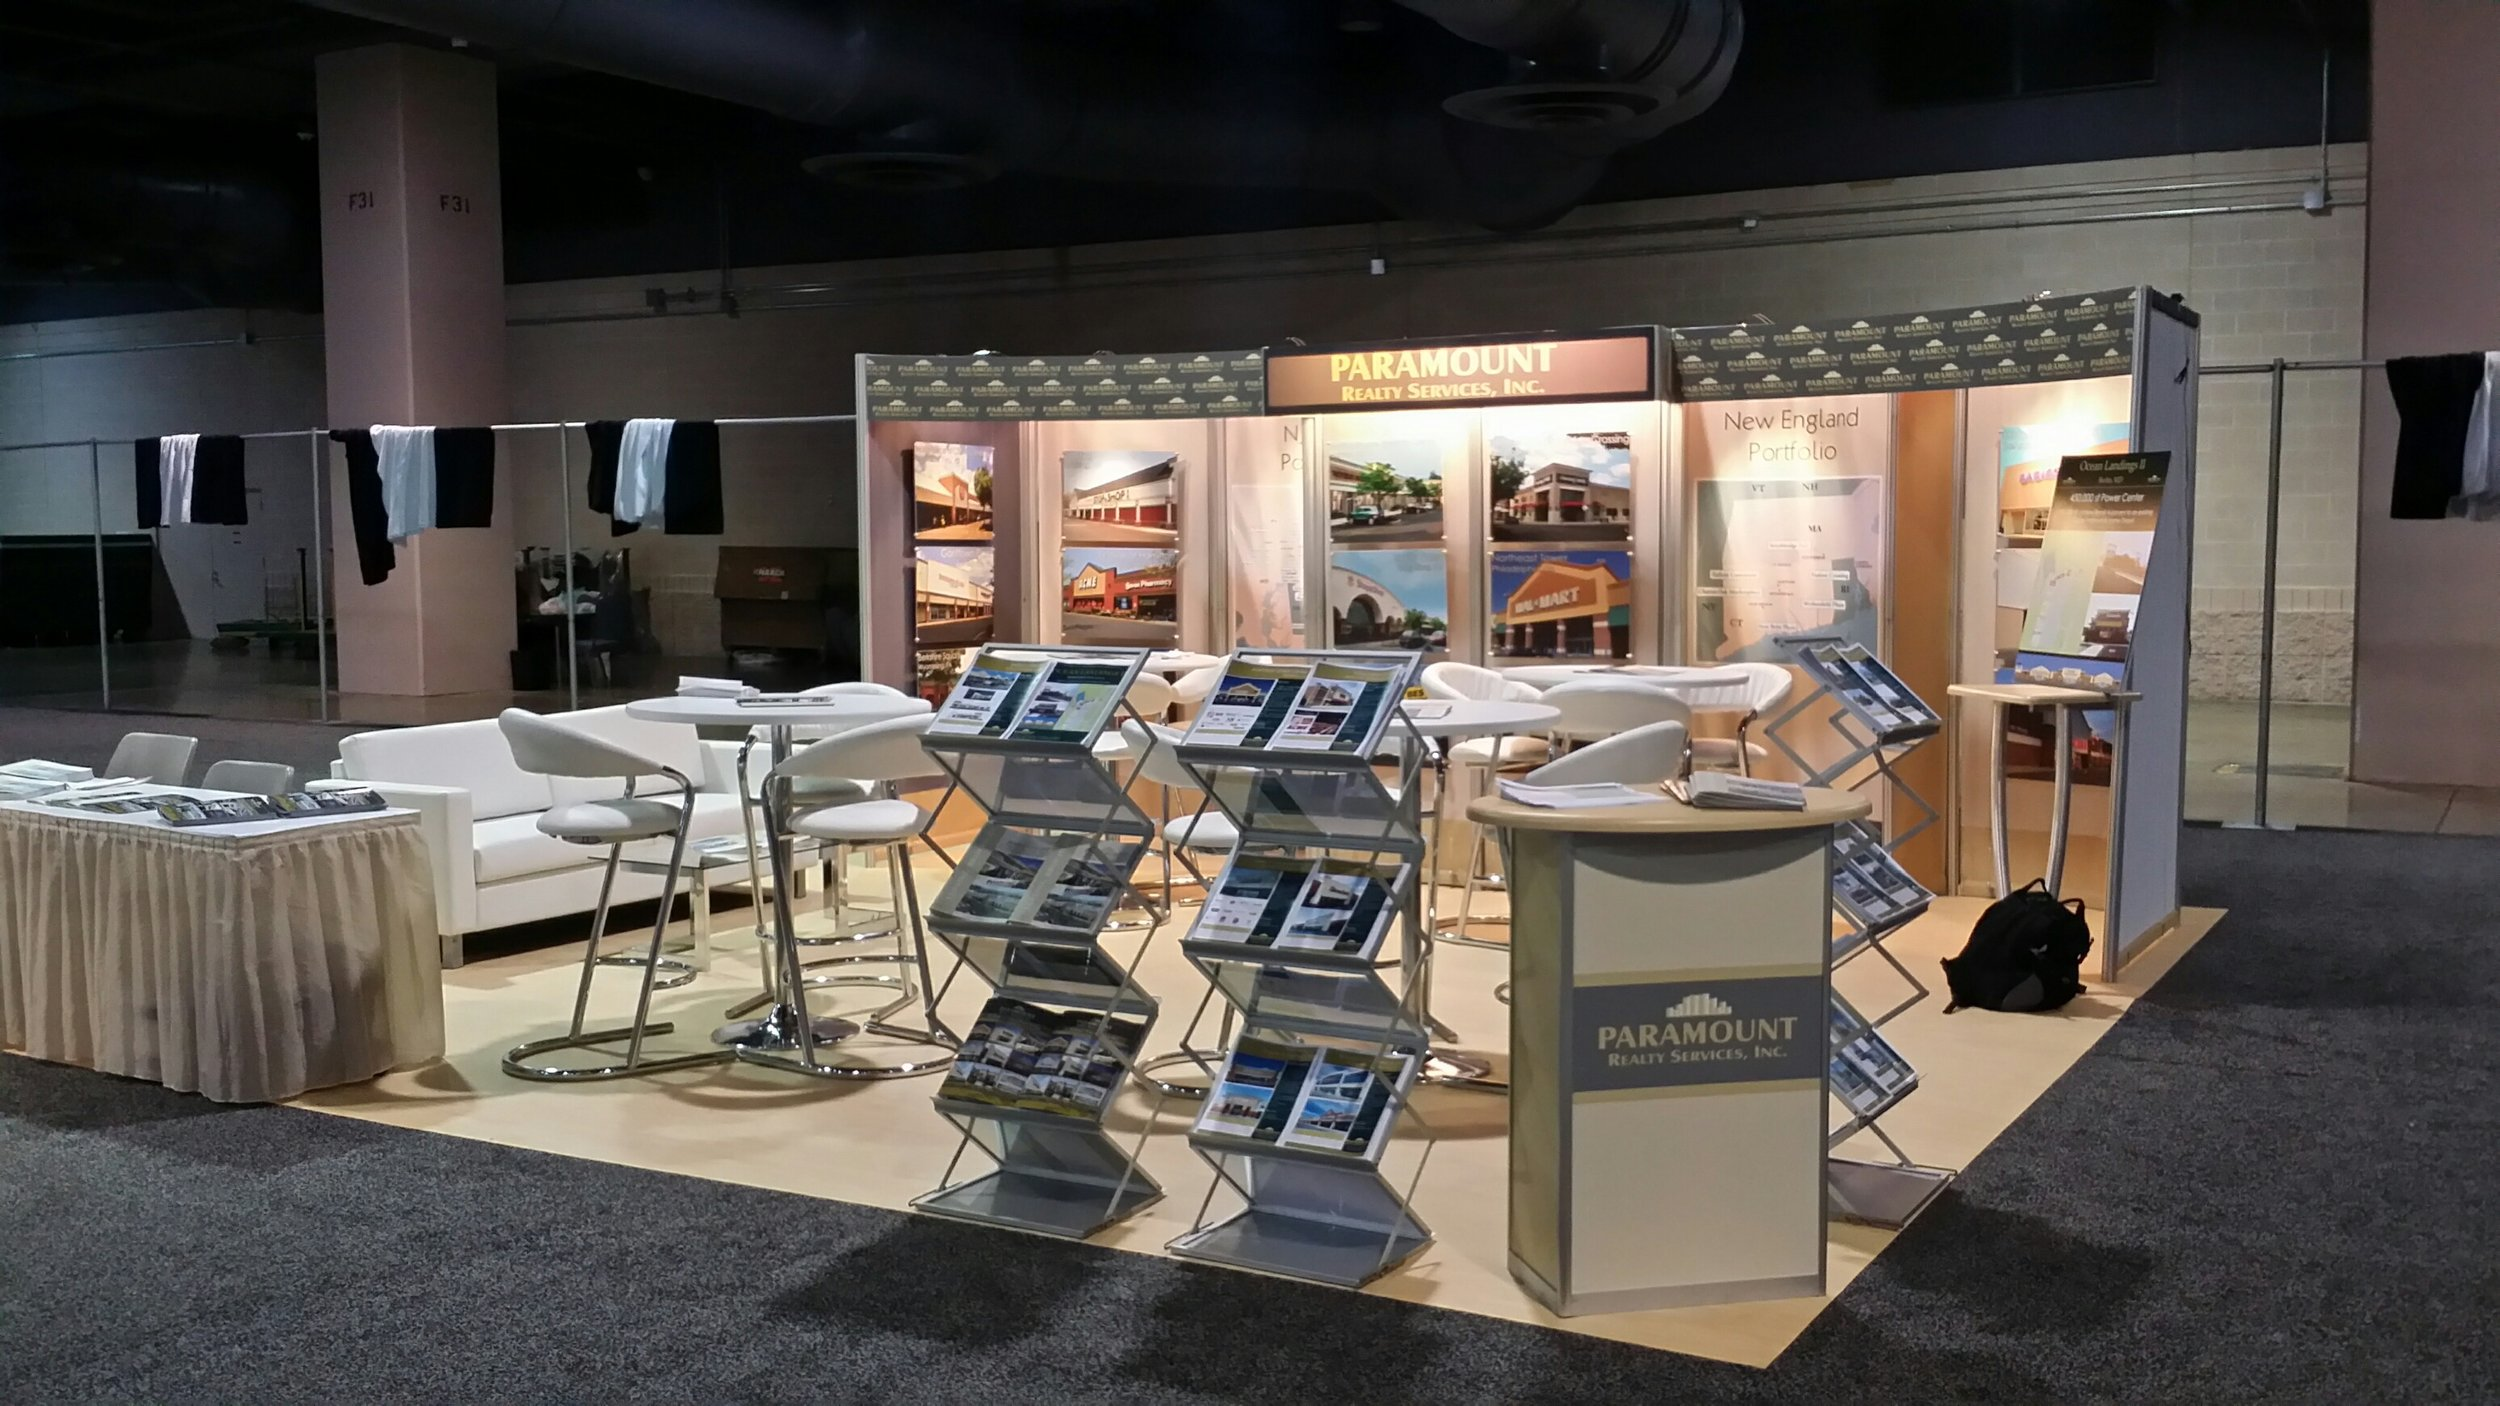 Paramount Realty Services Trade Show Display